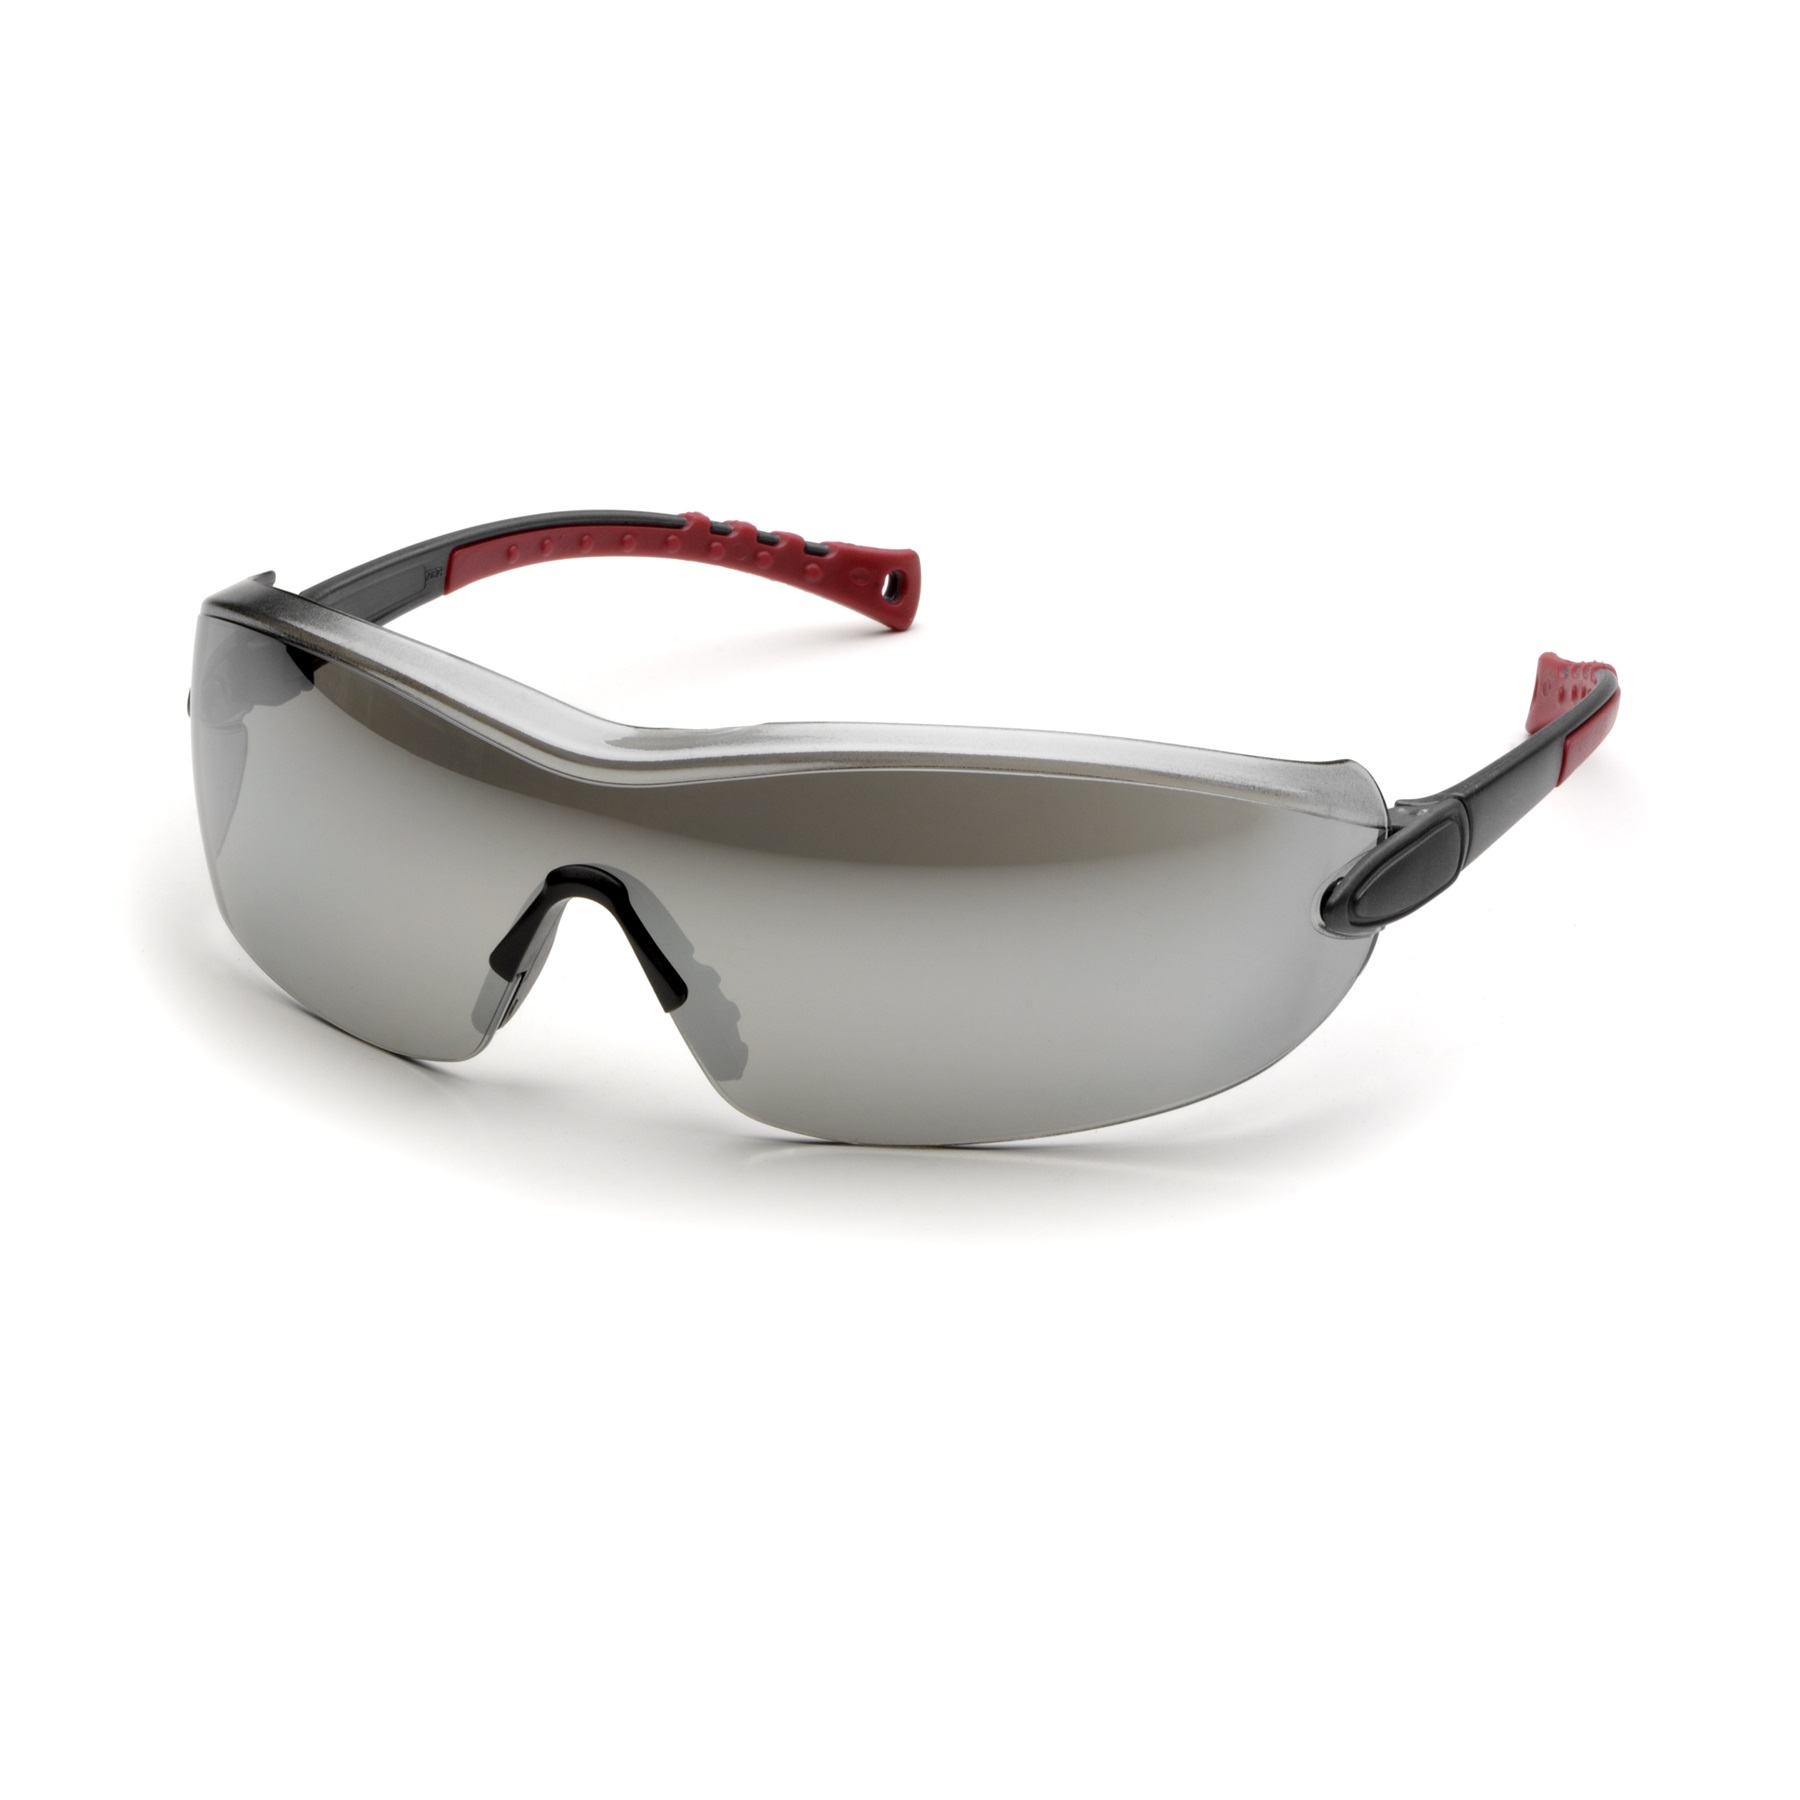 Elvex Neutron Anti-Fog Safety Glasses SG-30